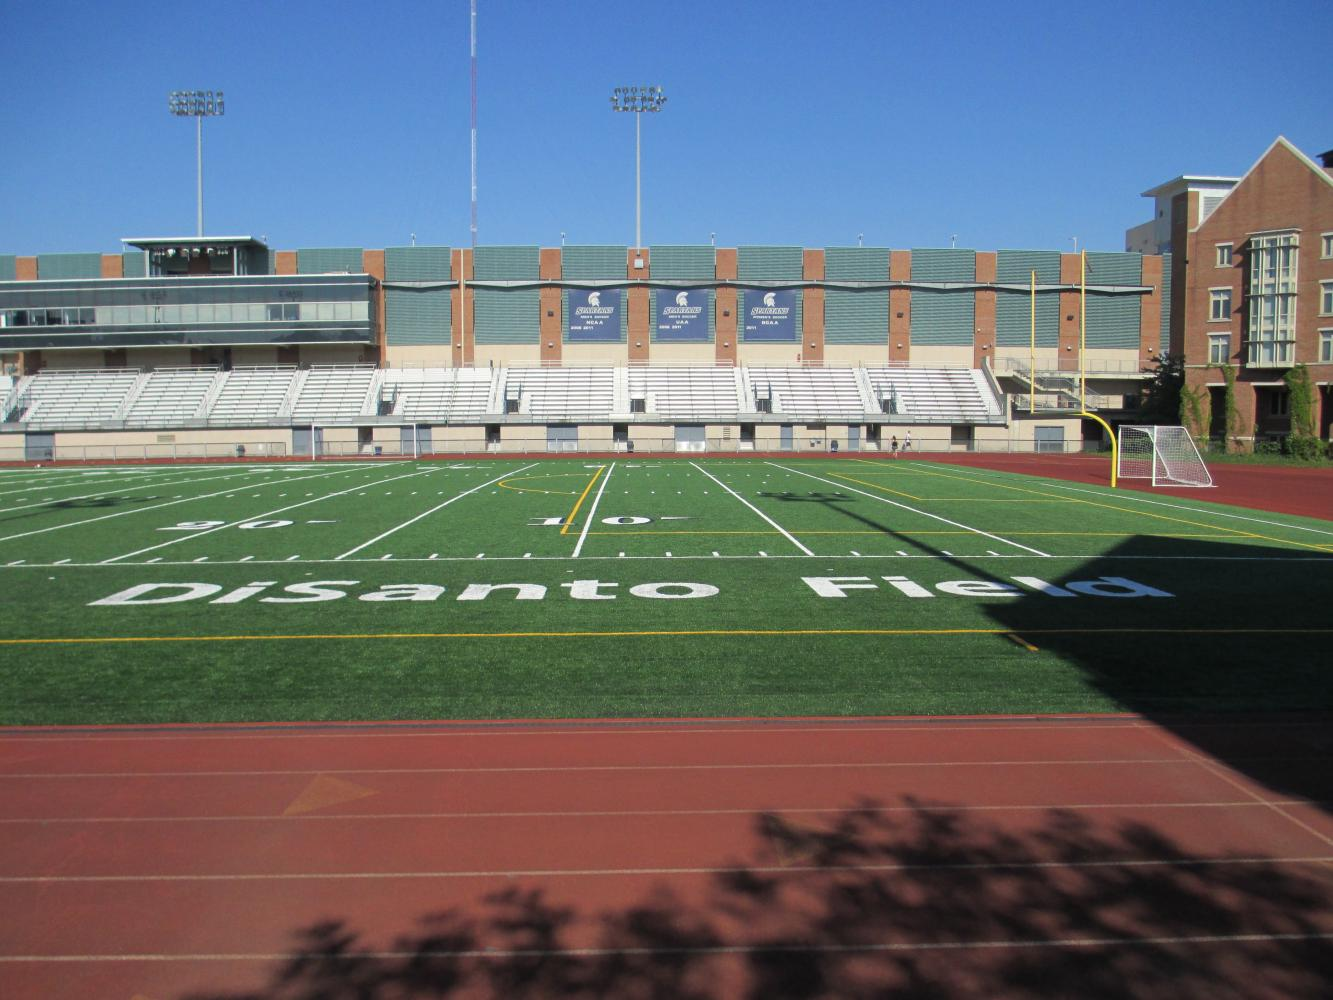 A variety of sports teams practice and play on DiSanto Field, including football, soccer and track and field.